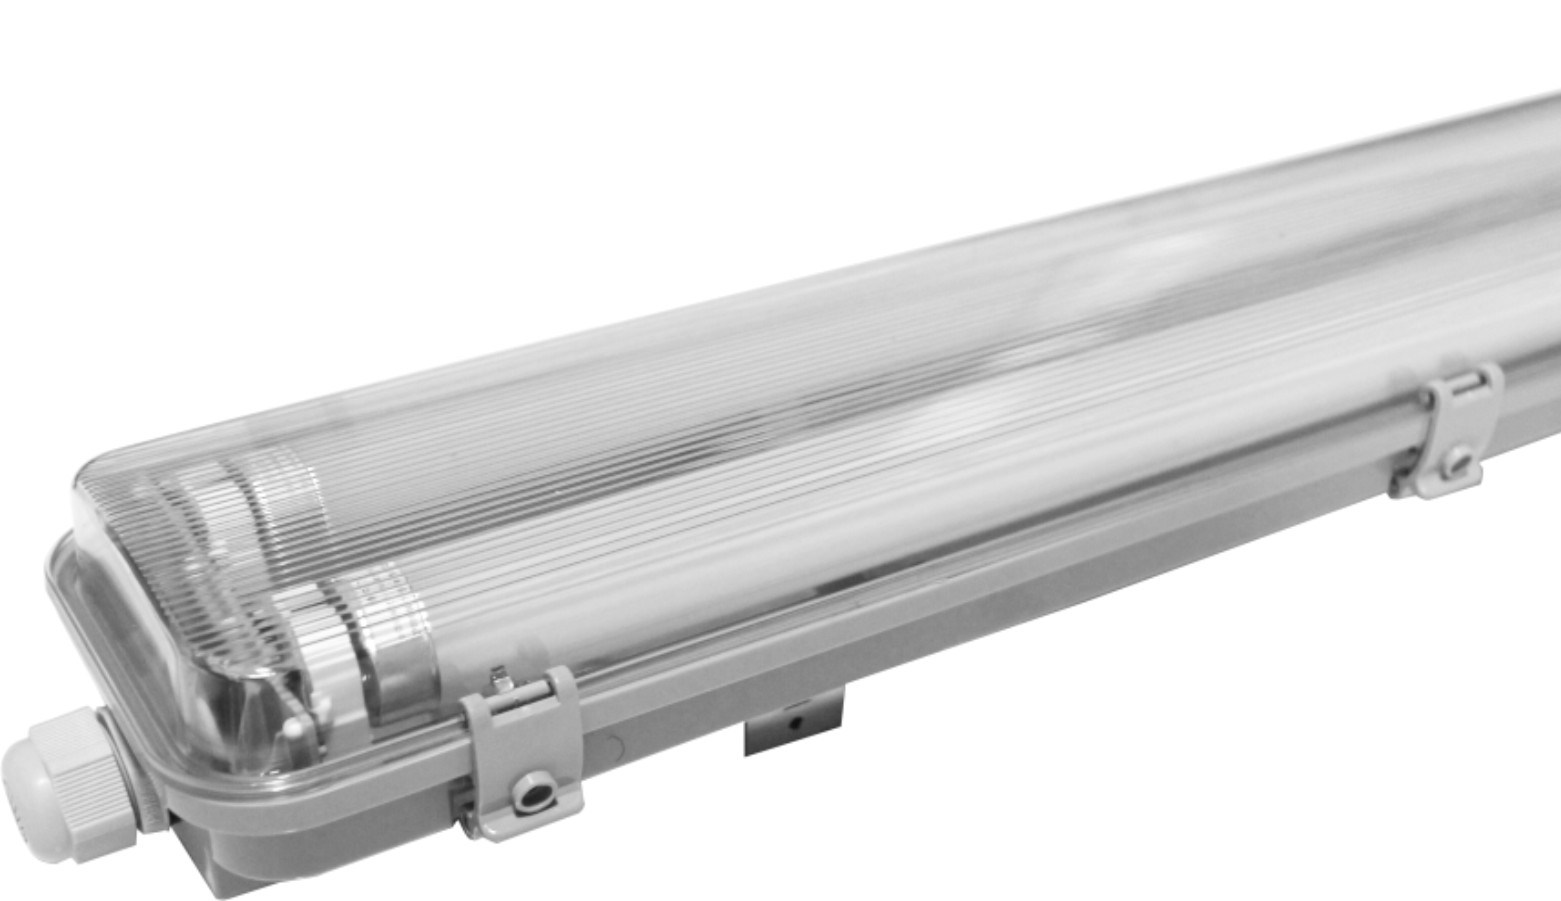 T8 IP65 LED Waterproof Lighting Fixture